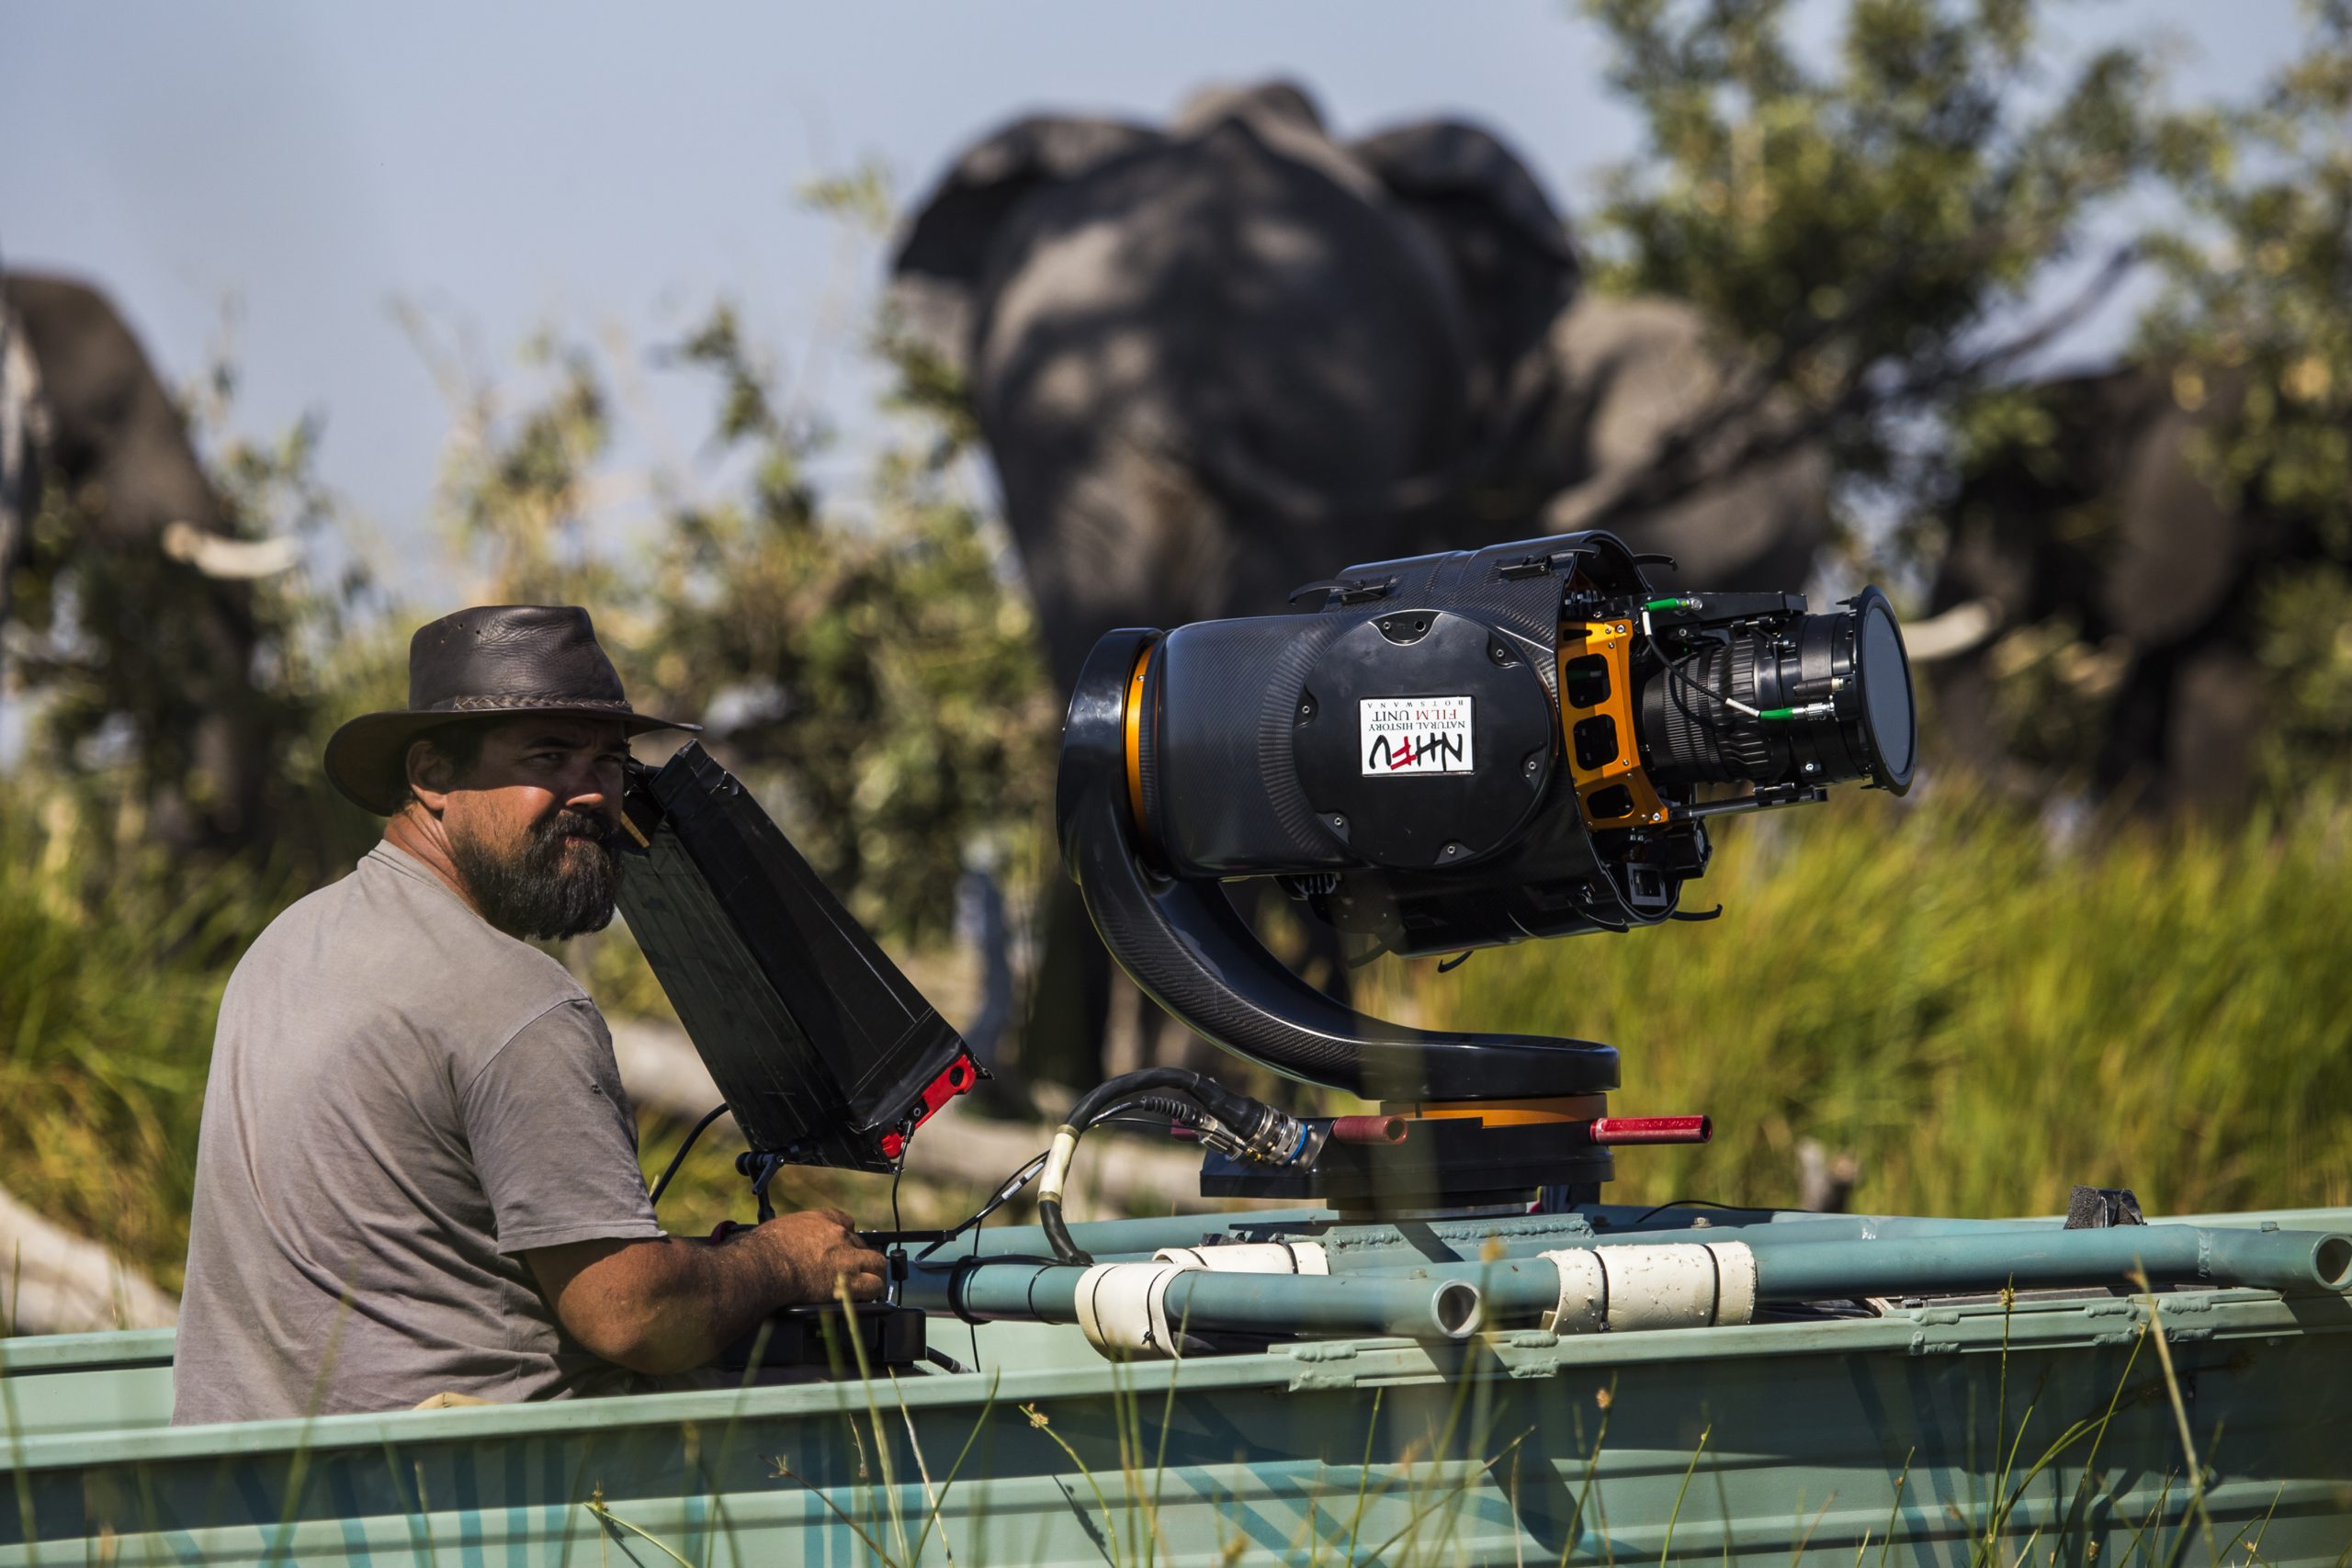 Nick Walton speaks to acclaimed Botswanan wildlife filmmaker Brad Bestelink about his childhood in the bush, the influence natural history films can have on new audiences, and how poaching can be curbed through effective eco-tourism.